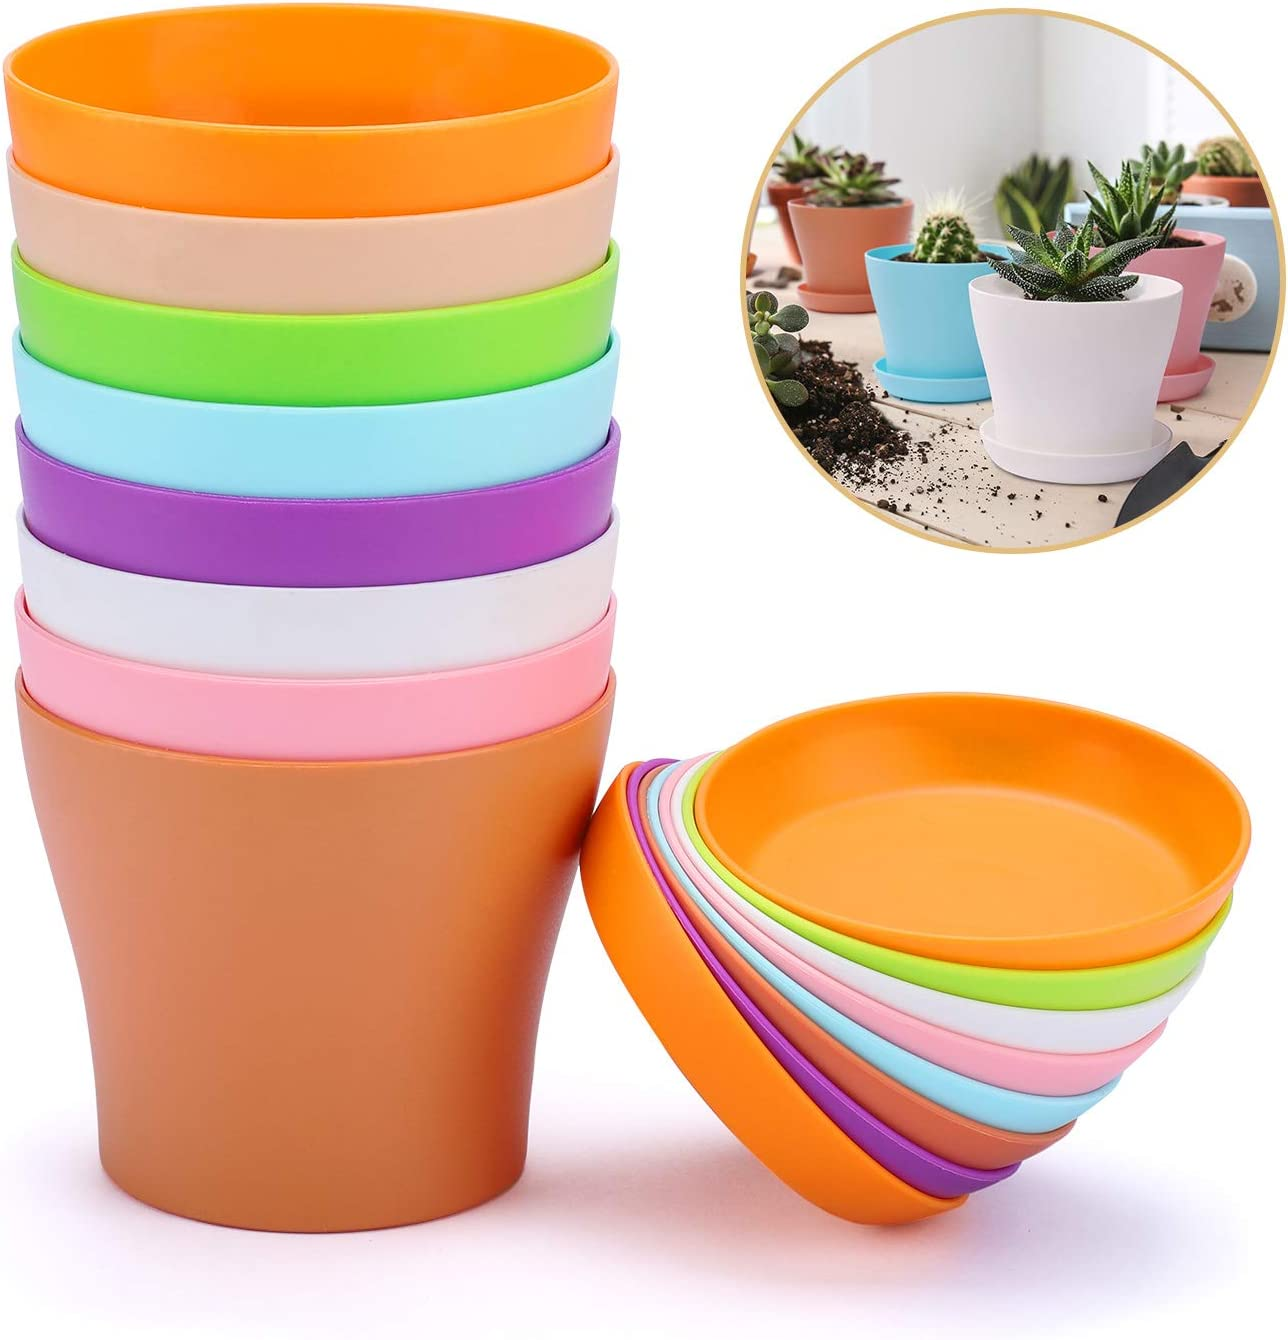 "Delxo 8 Pcs 4"" Plastic Plants Nursery Pots Reusable Plant Seeding Nursery Pot ,Colorful Flower Plant Container Seed Starting Pots with Pallet,8 Colors"